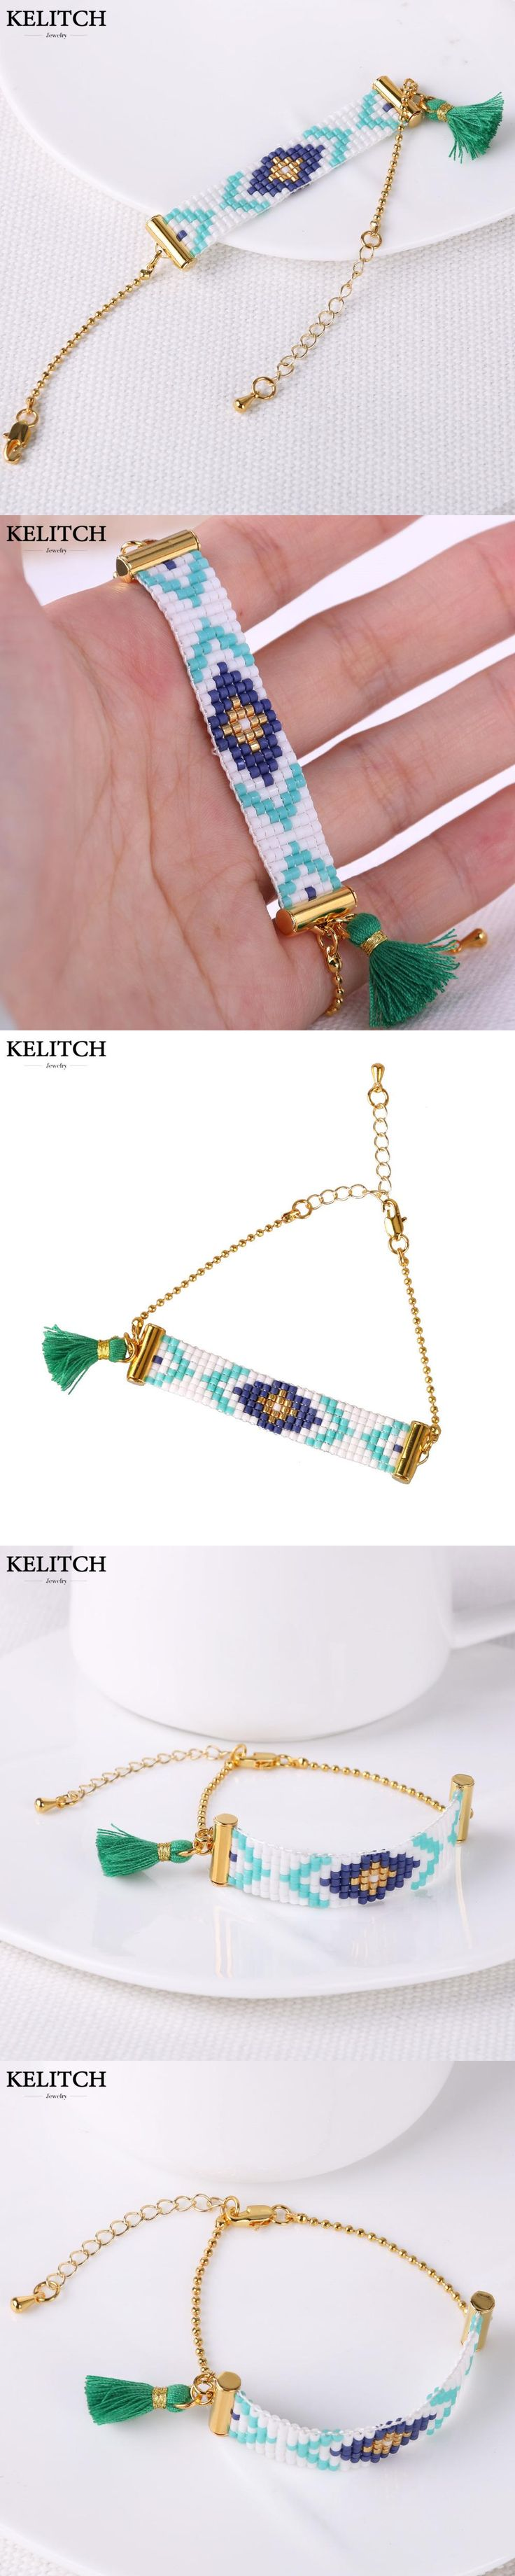 KELITCH Jewelry 2017 New Arrival Multicolor Crystal Beaded Green Tassel Gold Chain Handmade Friendship Bracelet Drop Shipping